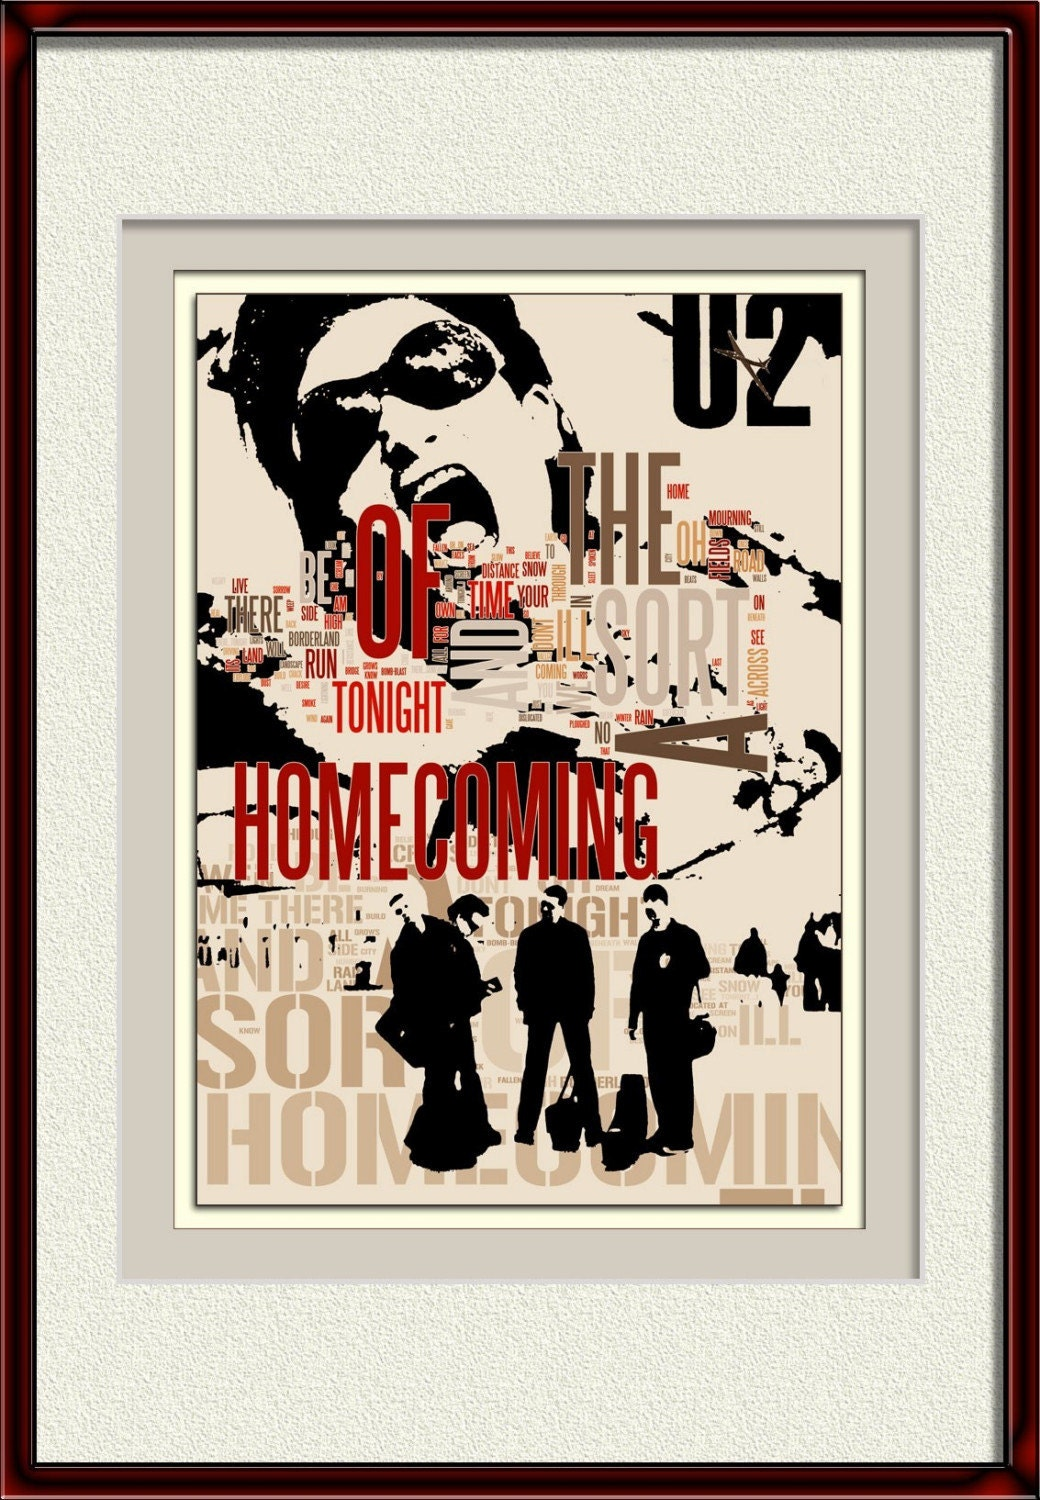 A Sort of Homecoming - u2 the song - collage limited edition